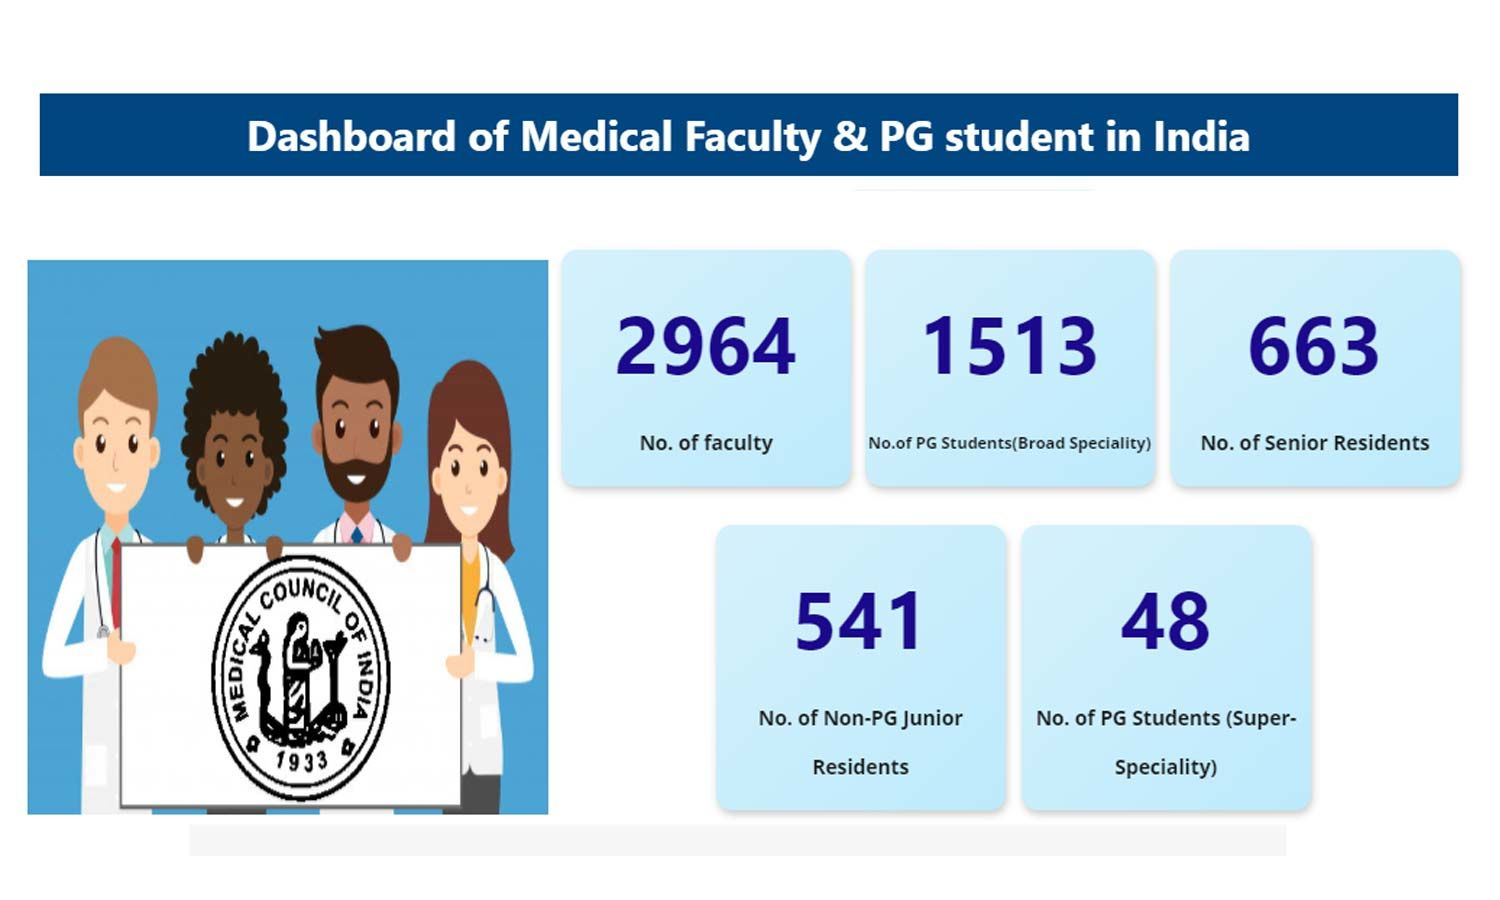 MCI launches a special dashboard of Medical Faculty, PG medical students and resident doctors in India